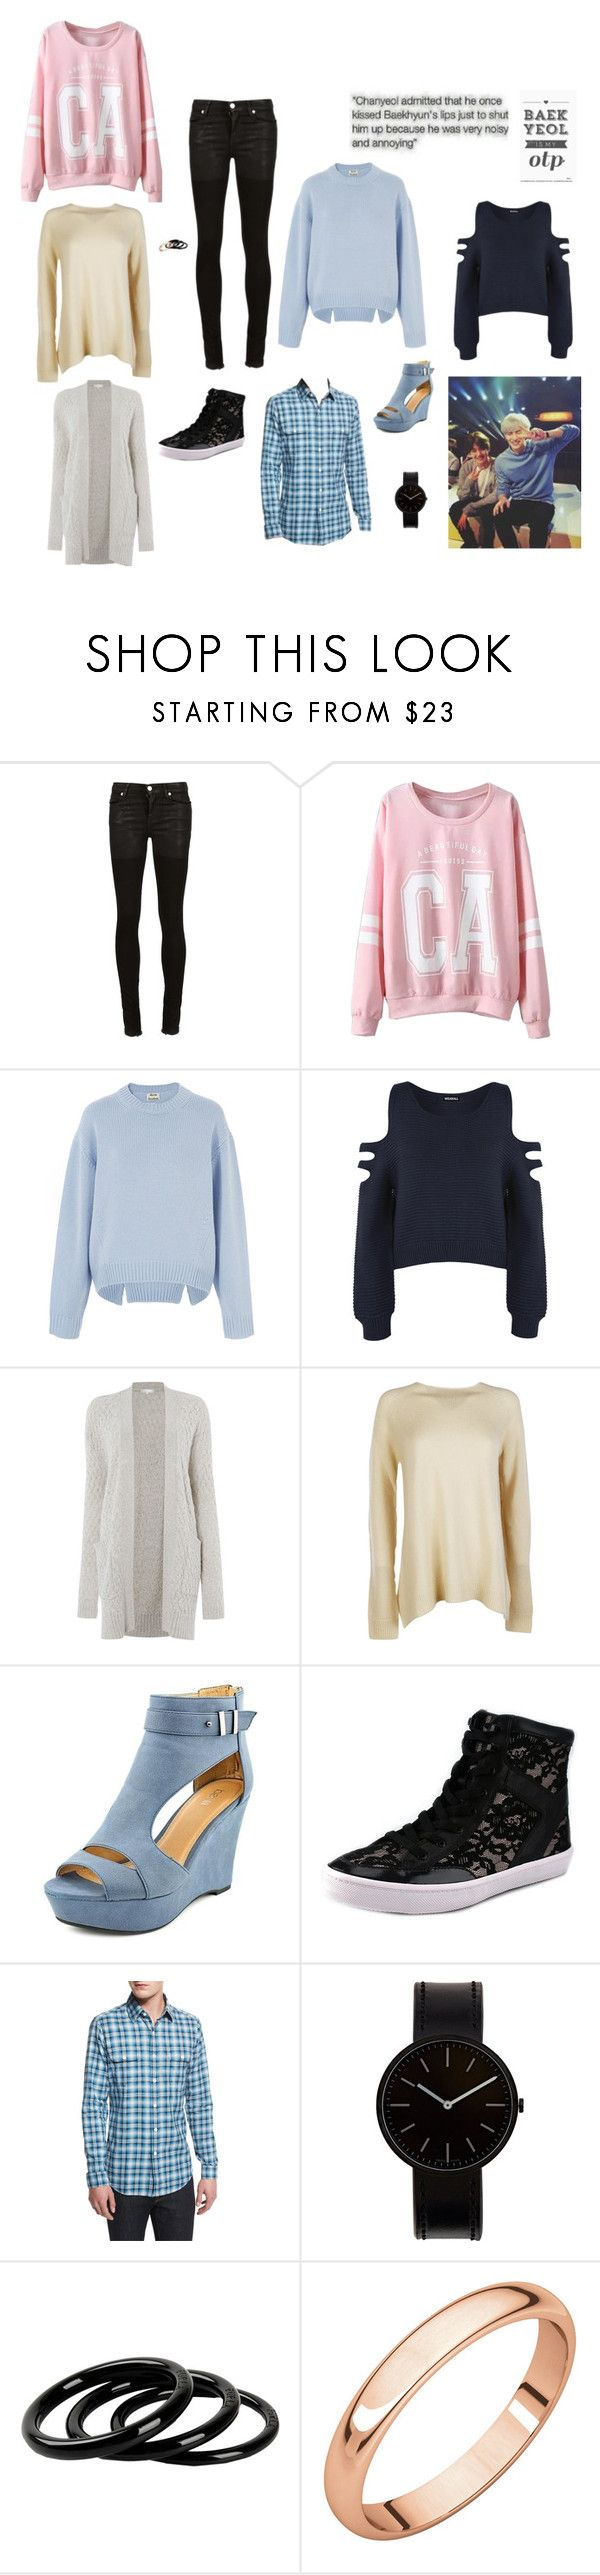 """""""EXO Baekyeol Double Date"""" by park-ji-eun ❤ liked on Polyvore featuring Alyx, WithChic, Acne Studios, WearAll, Gray & Willow, The Row, Rebecca Minkoff, Tom Ford, Uniform Wares and Furla"""